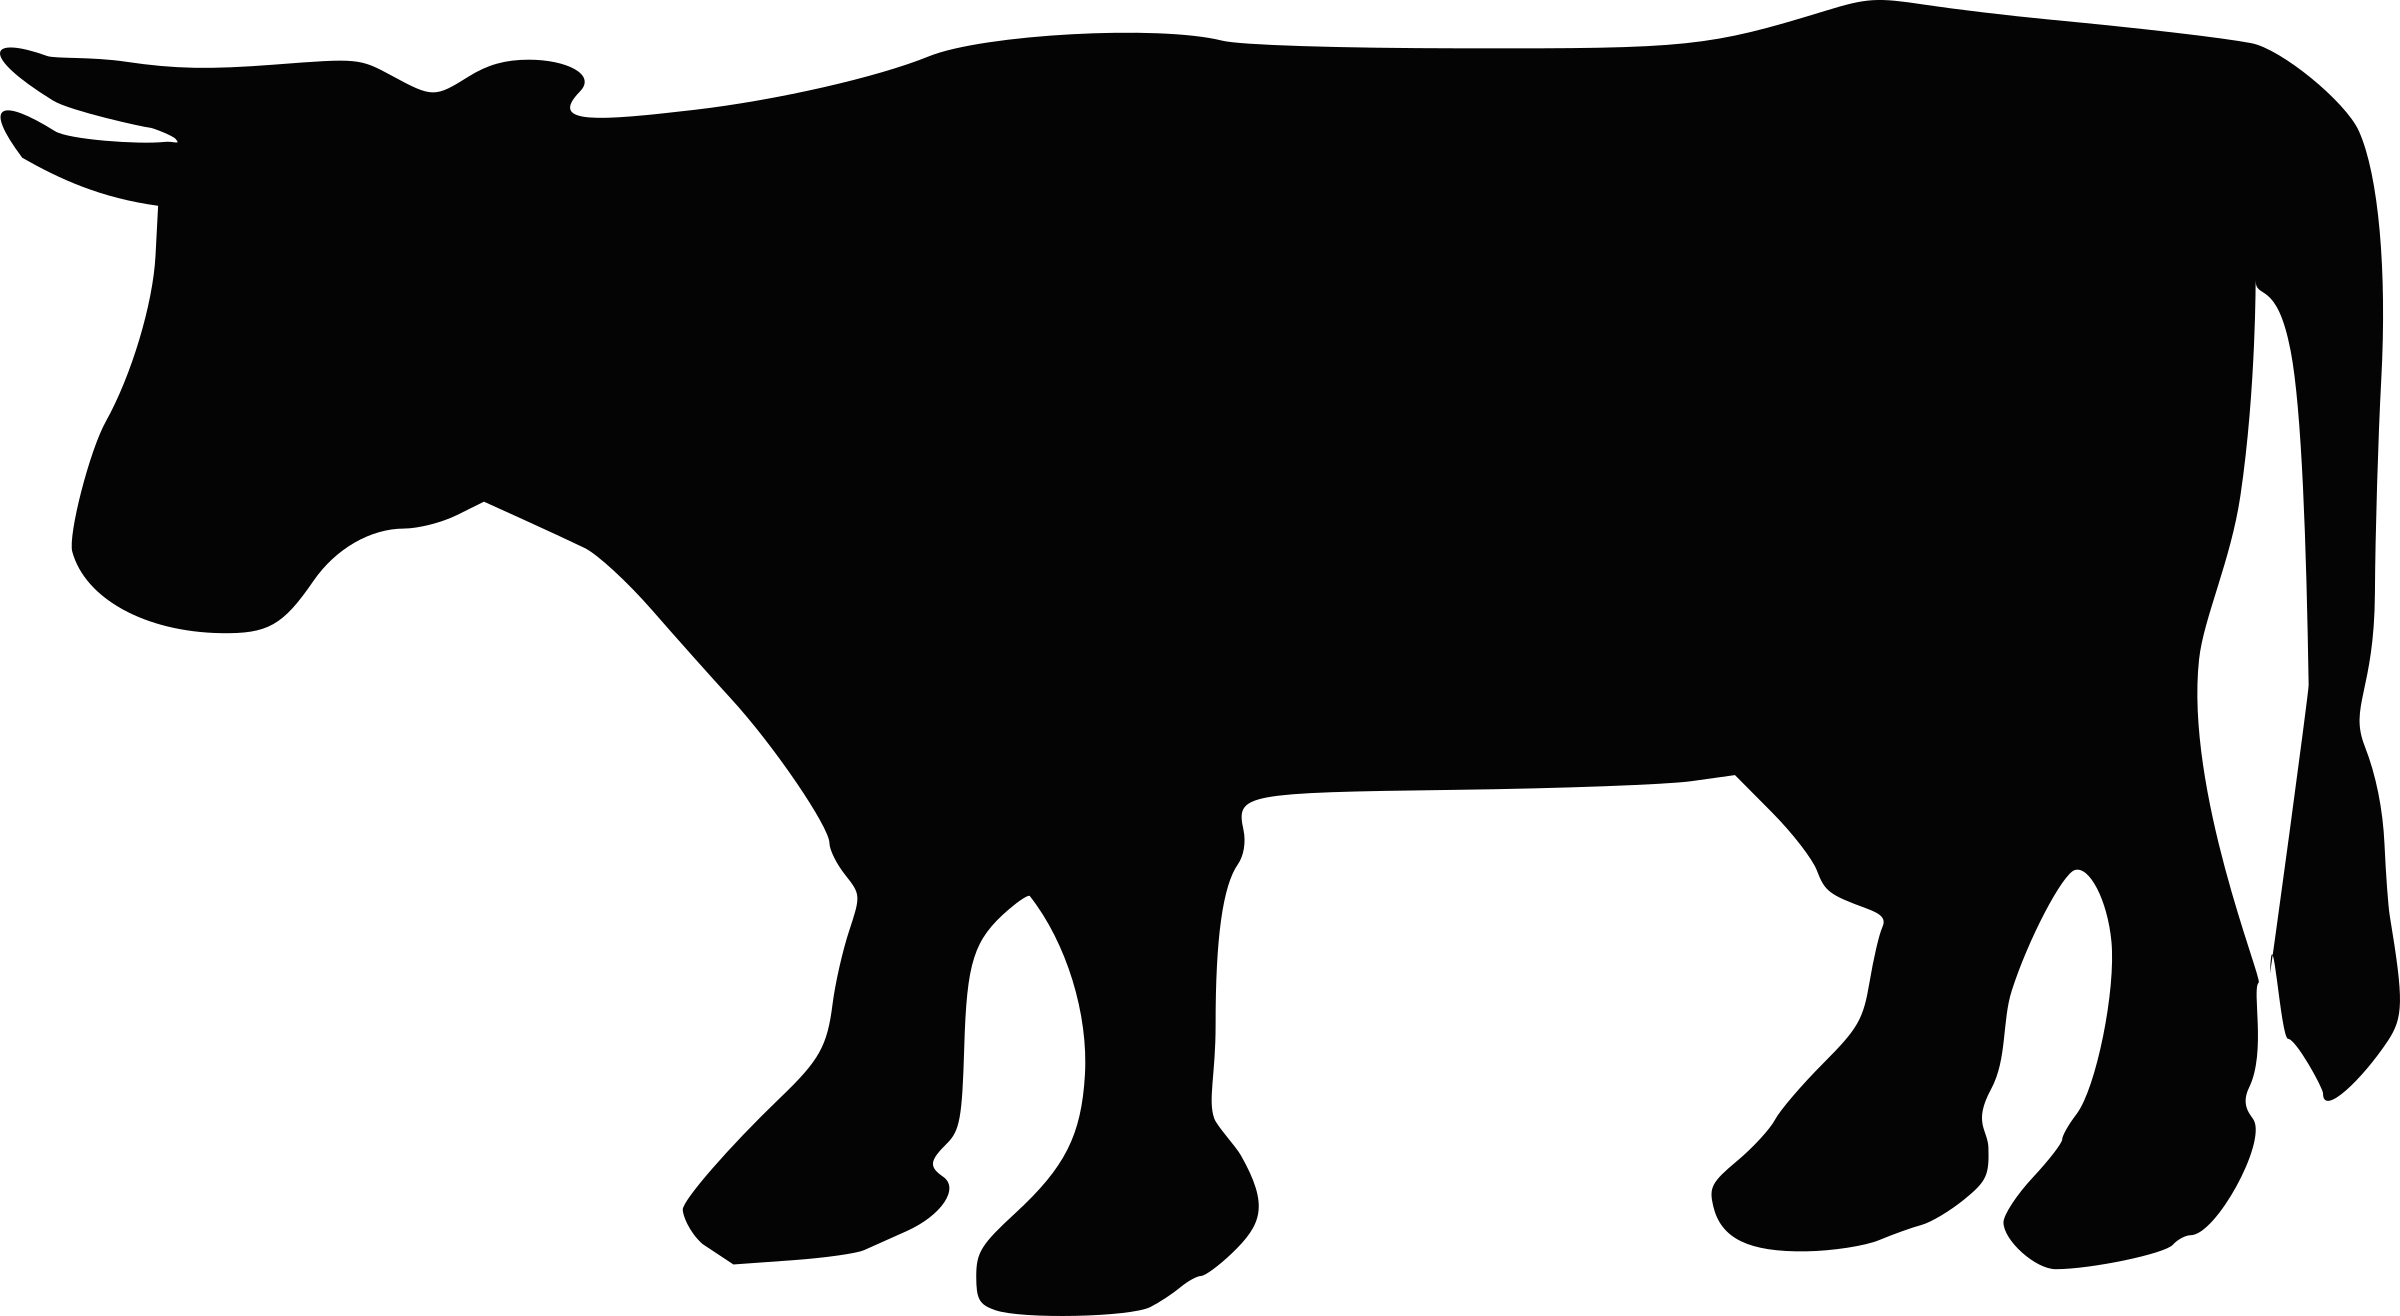 Beef vector cow outline. Calf silhouette at getdrawings